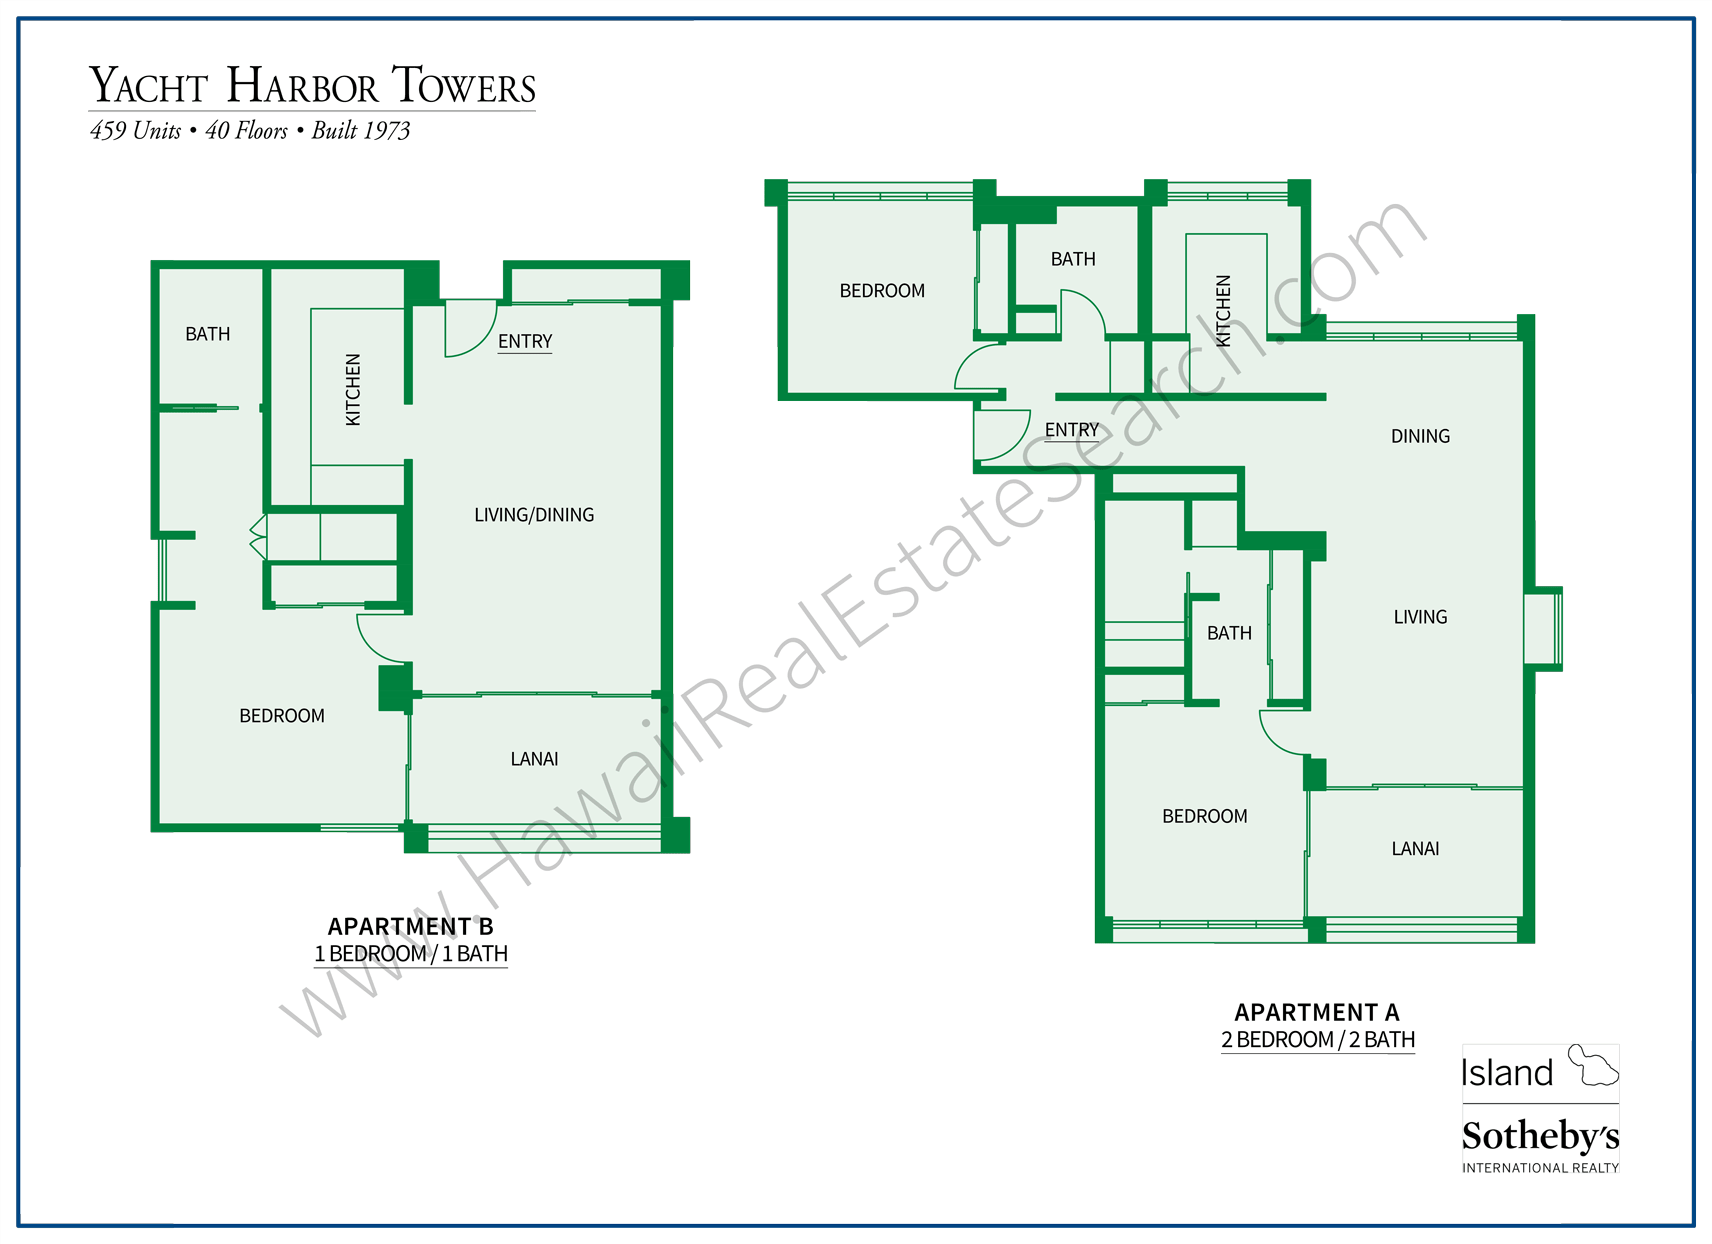 Yacht Harbor Towers Floorplans